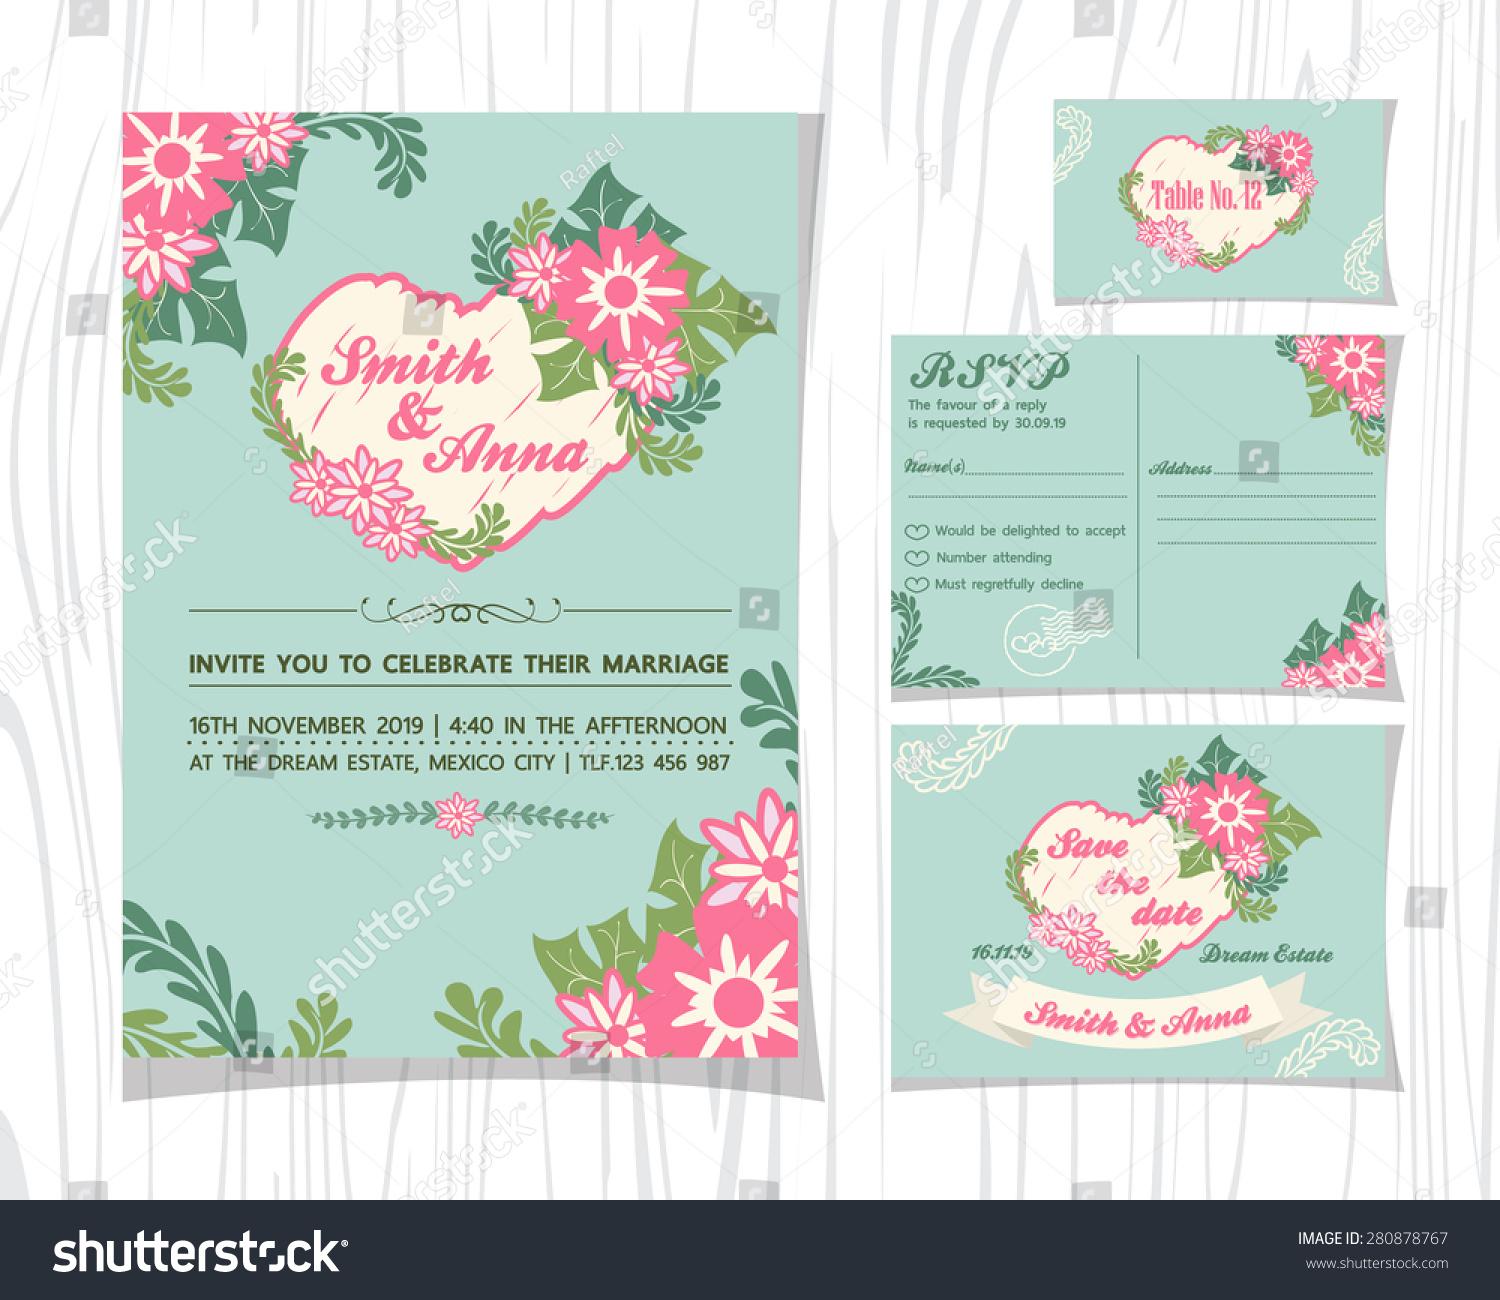 vintage rose tone wedding invitation sets stock vector royalty free